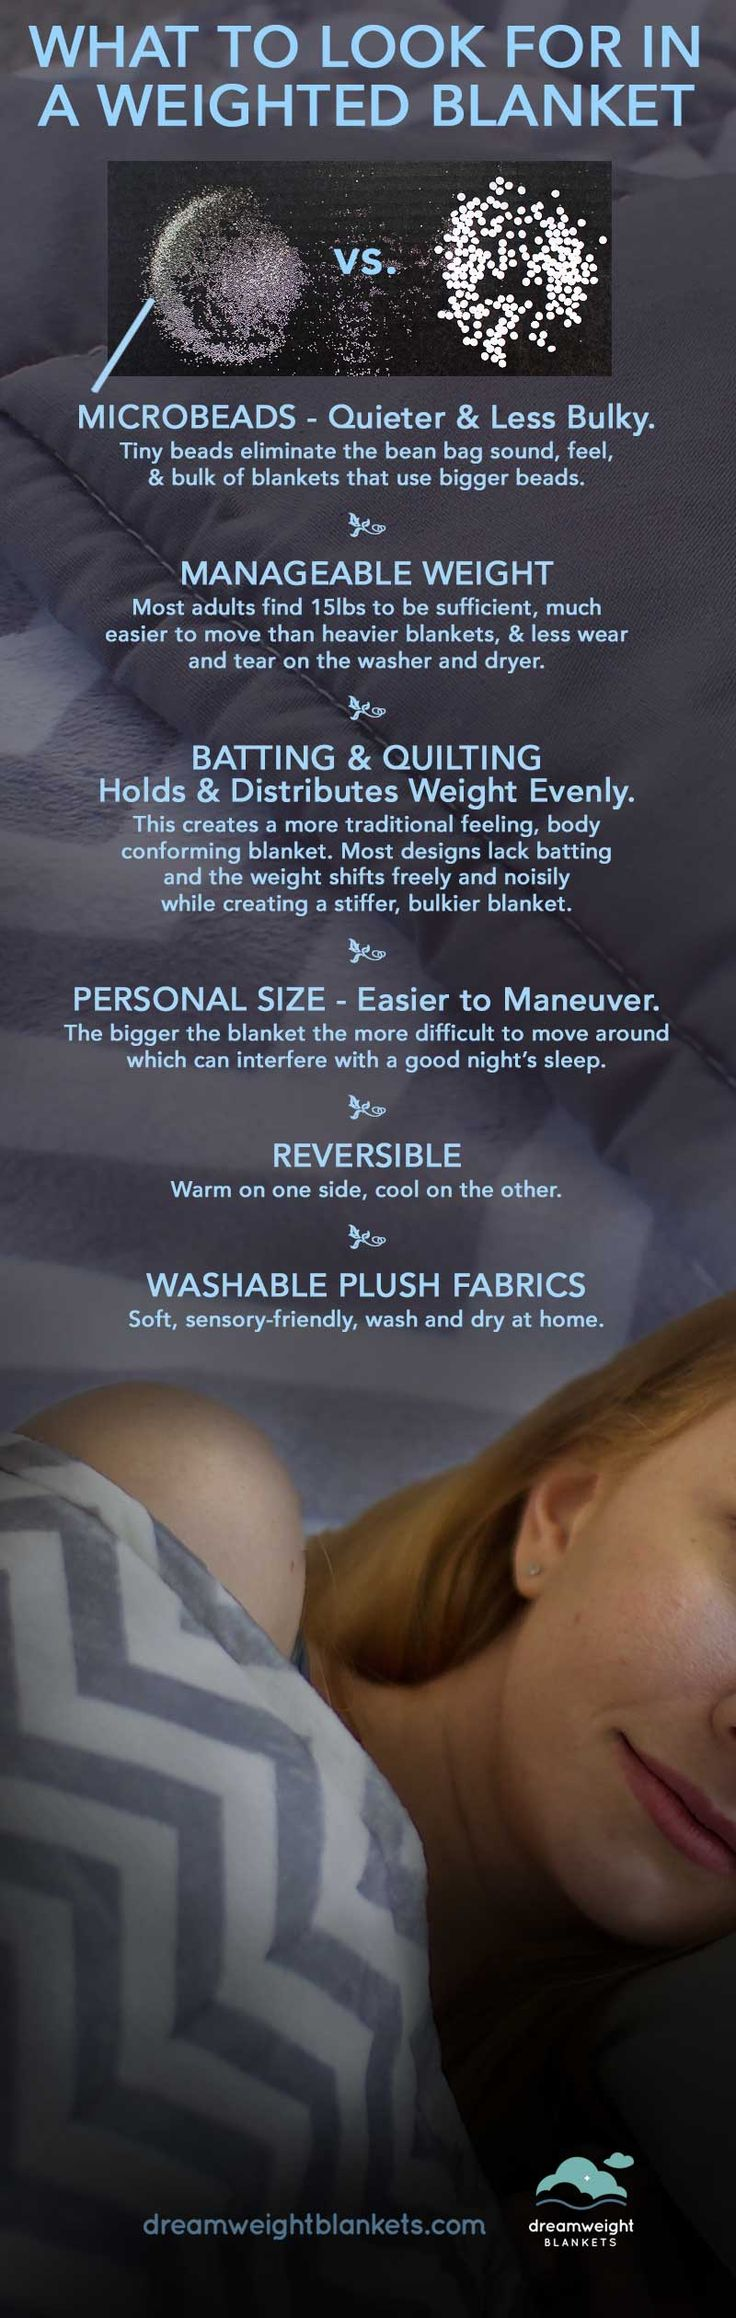 27 best dreamweight blankets adult weighted blankets images on tips for what to look for in the best weighted blanket so you can get the nvjuhfo Image collections